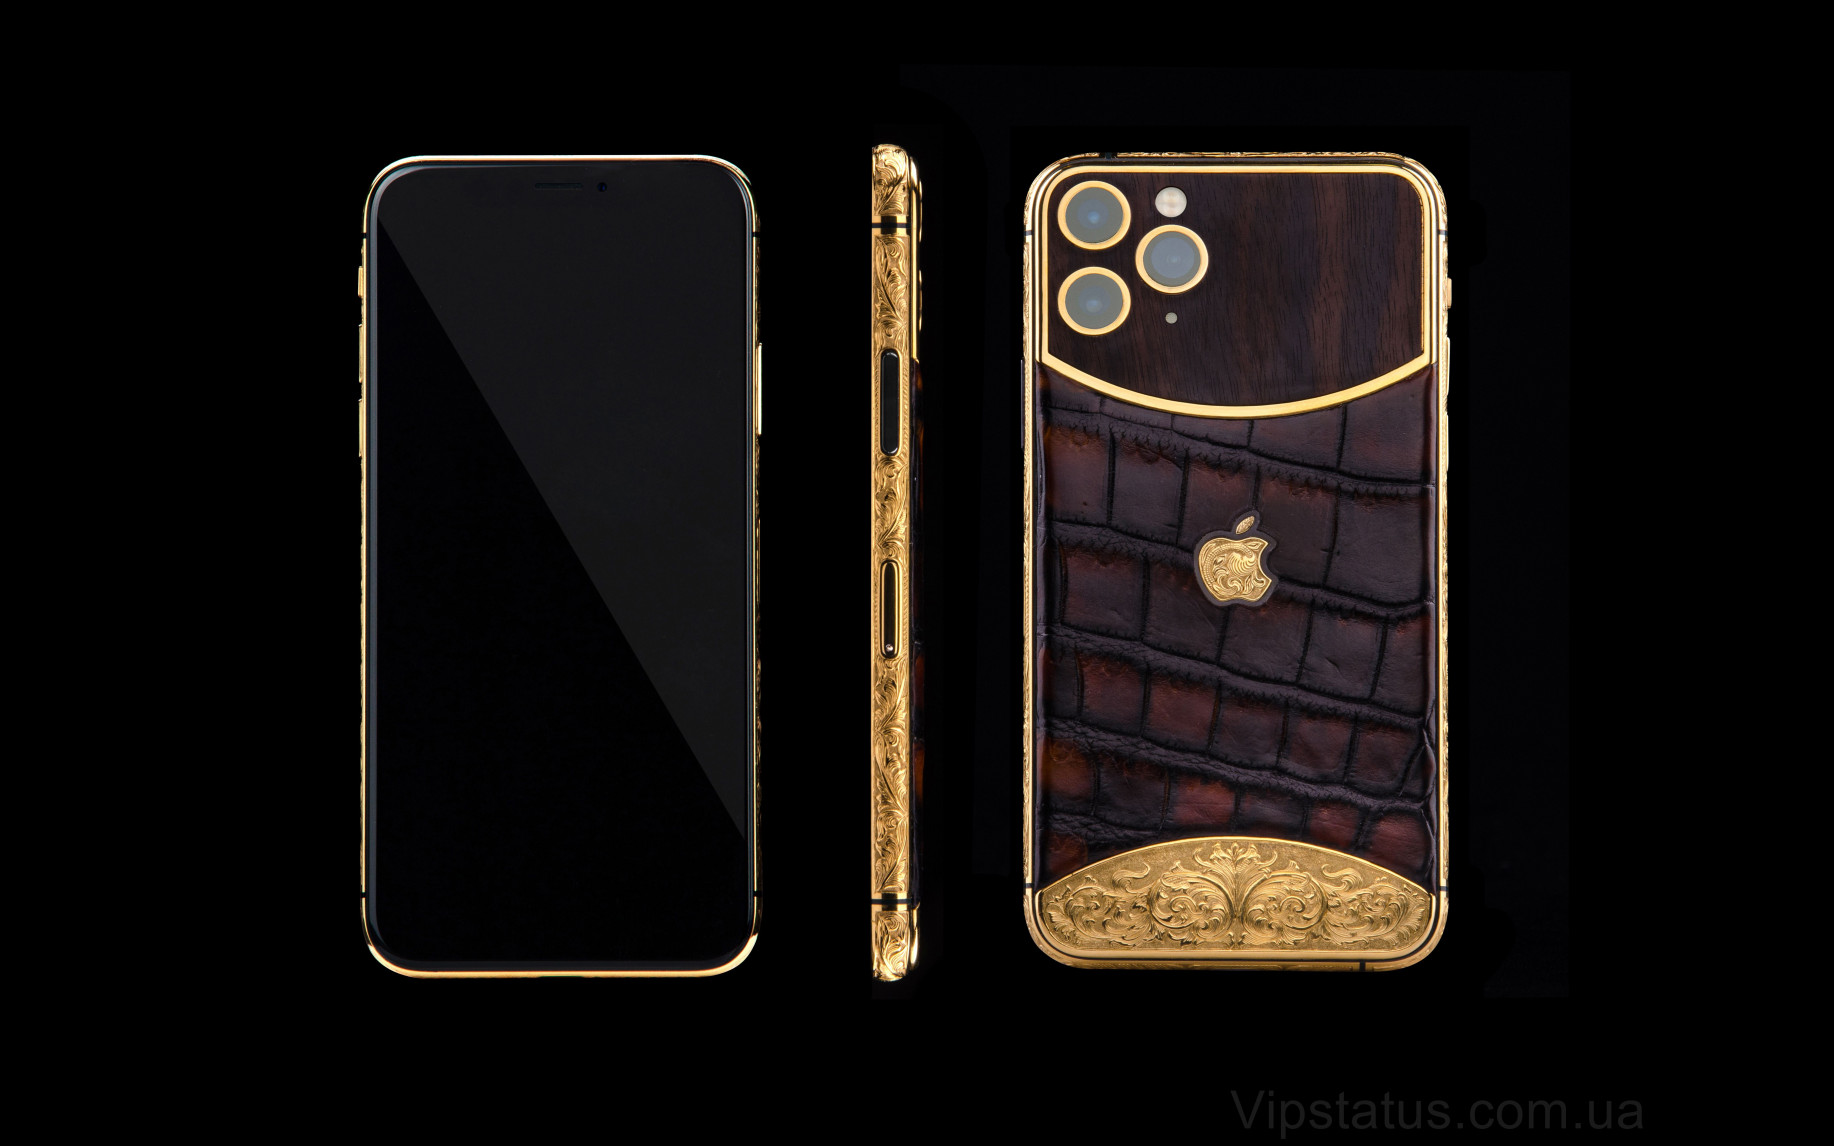 Elite Brown Edition IPHONE 11 PRO 512 GB Brown Edition IPHONE 11 PRO 512 GB image 5